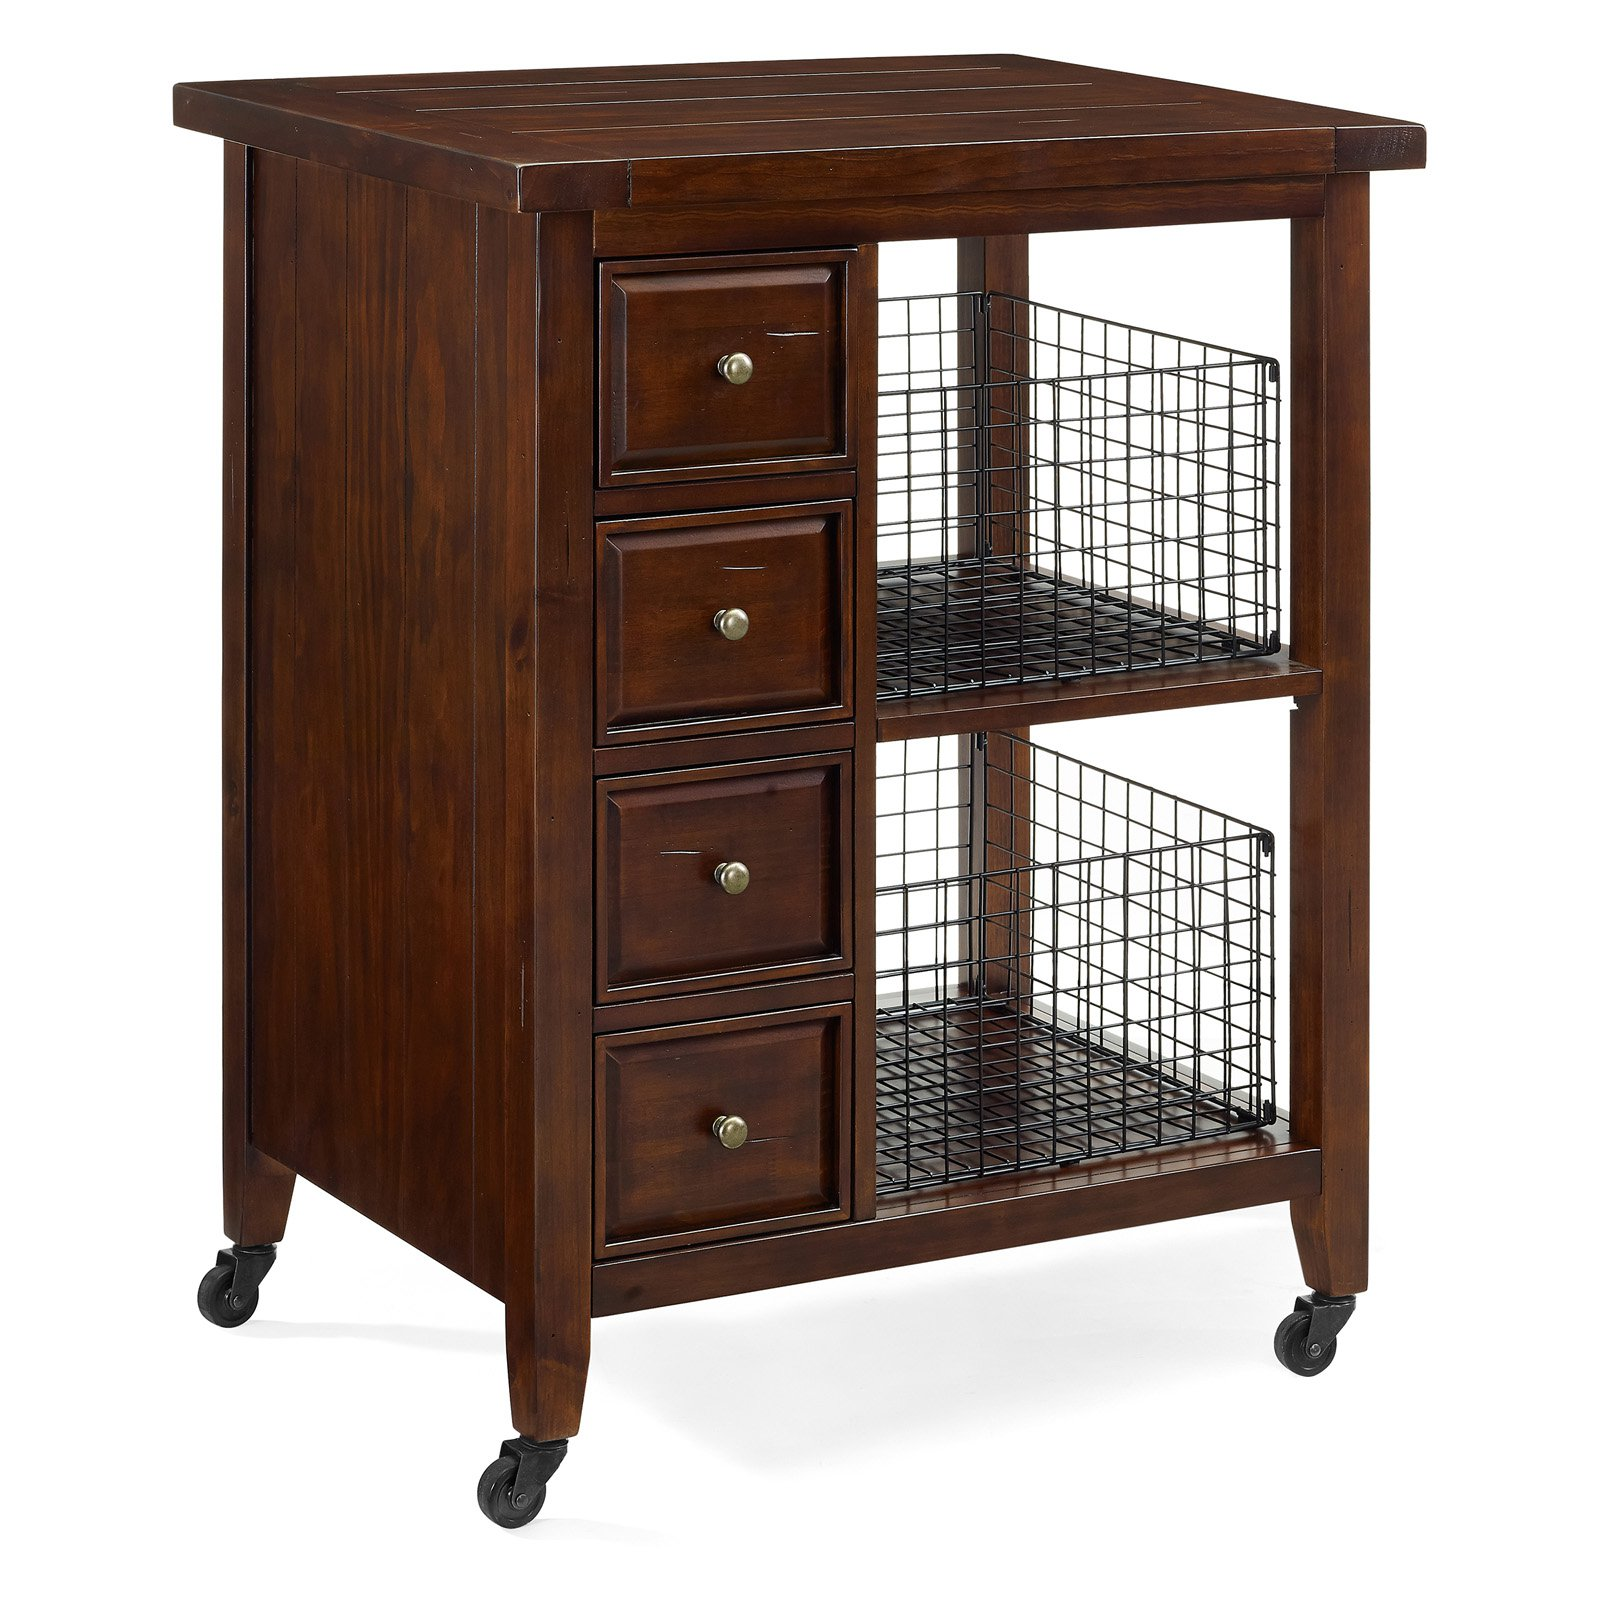 crosley kitchen cart table set sienna walmart com